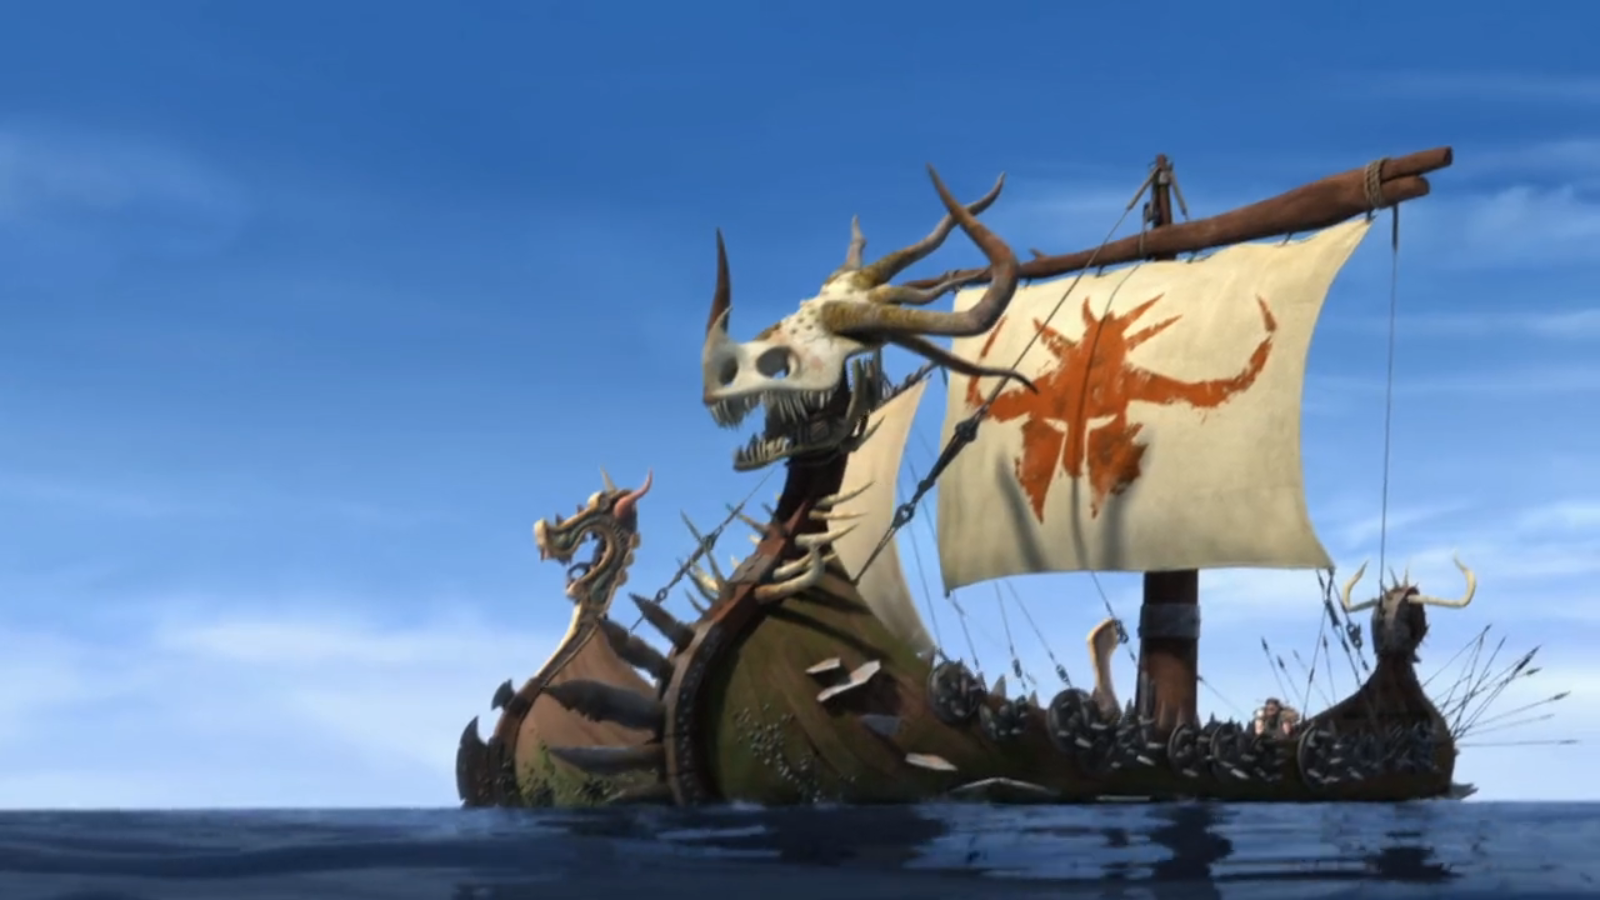 Image savages ship 1g how to train your dragon wiki fandom savages ship 1g ccuart Images